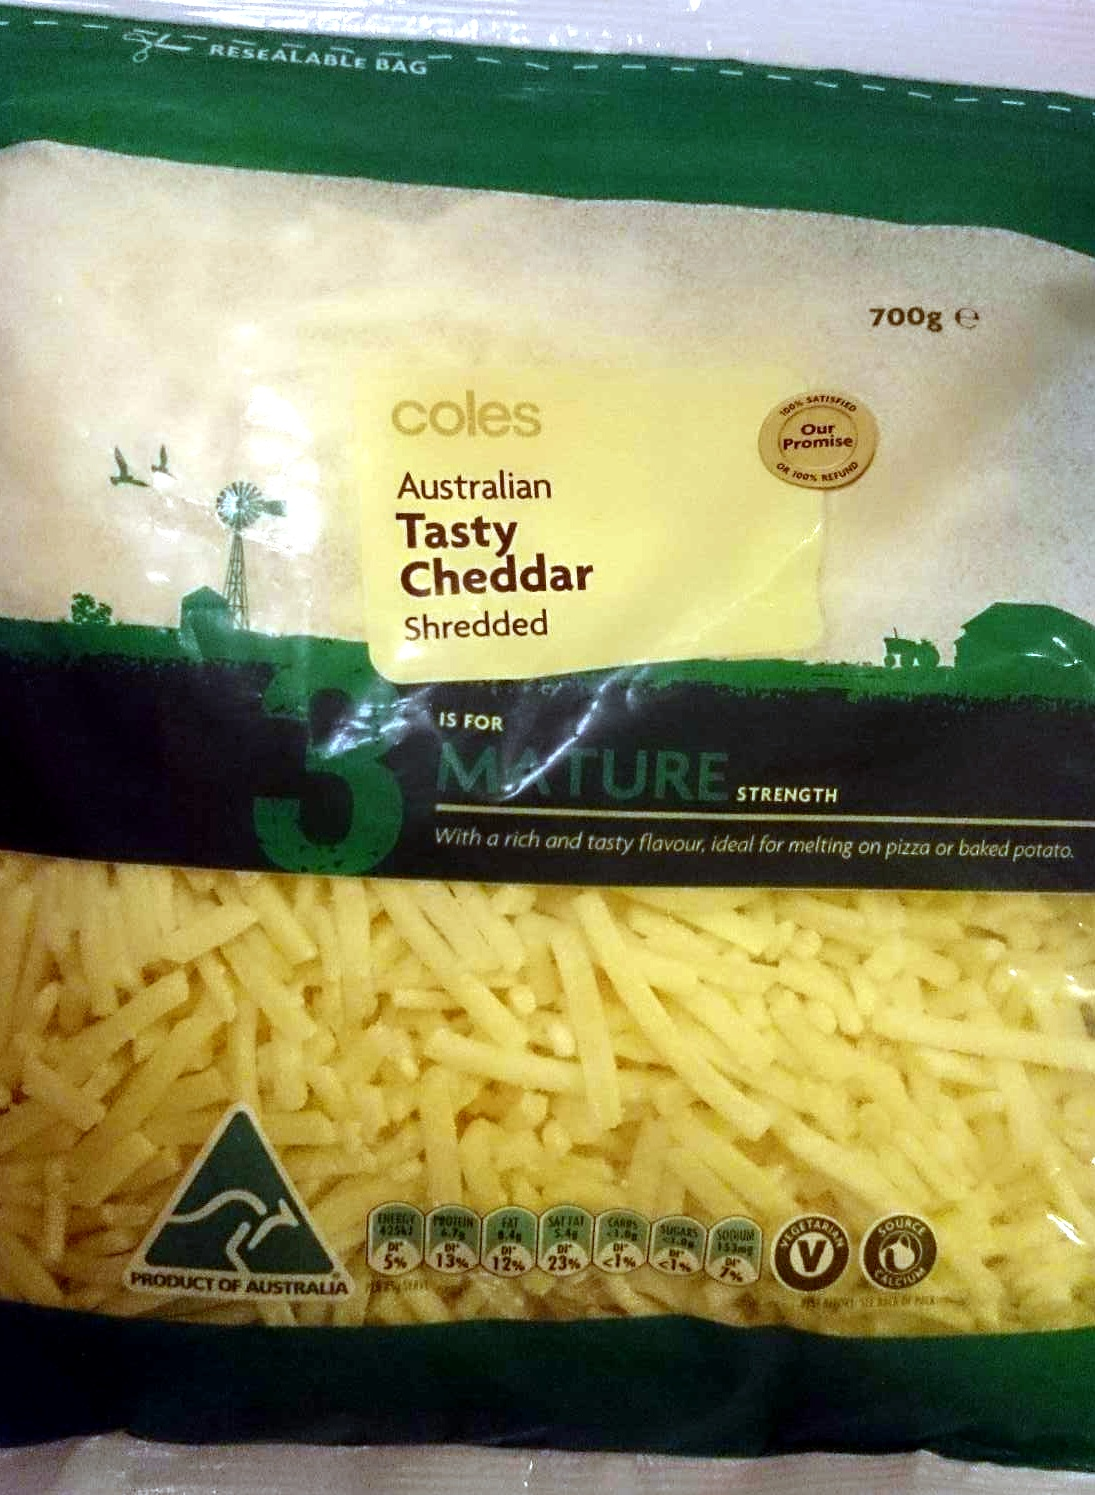 Australian Tasty Cheddar Shredded - Mature Strength - Product - en